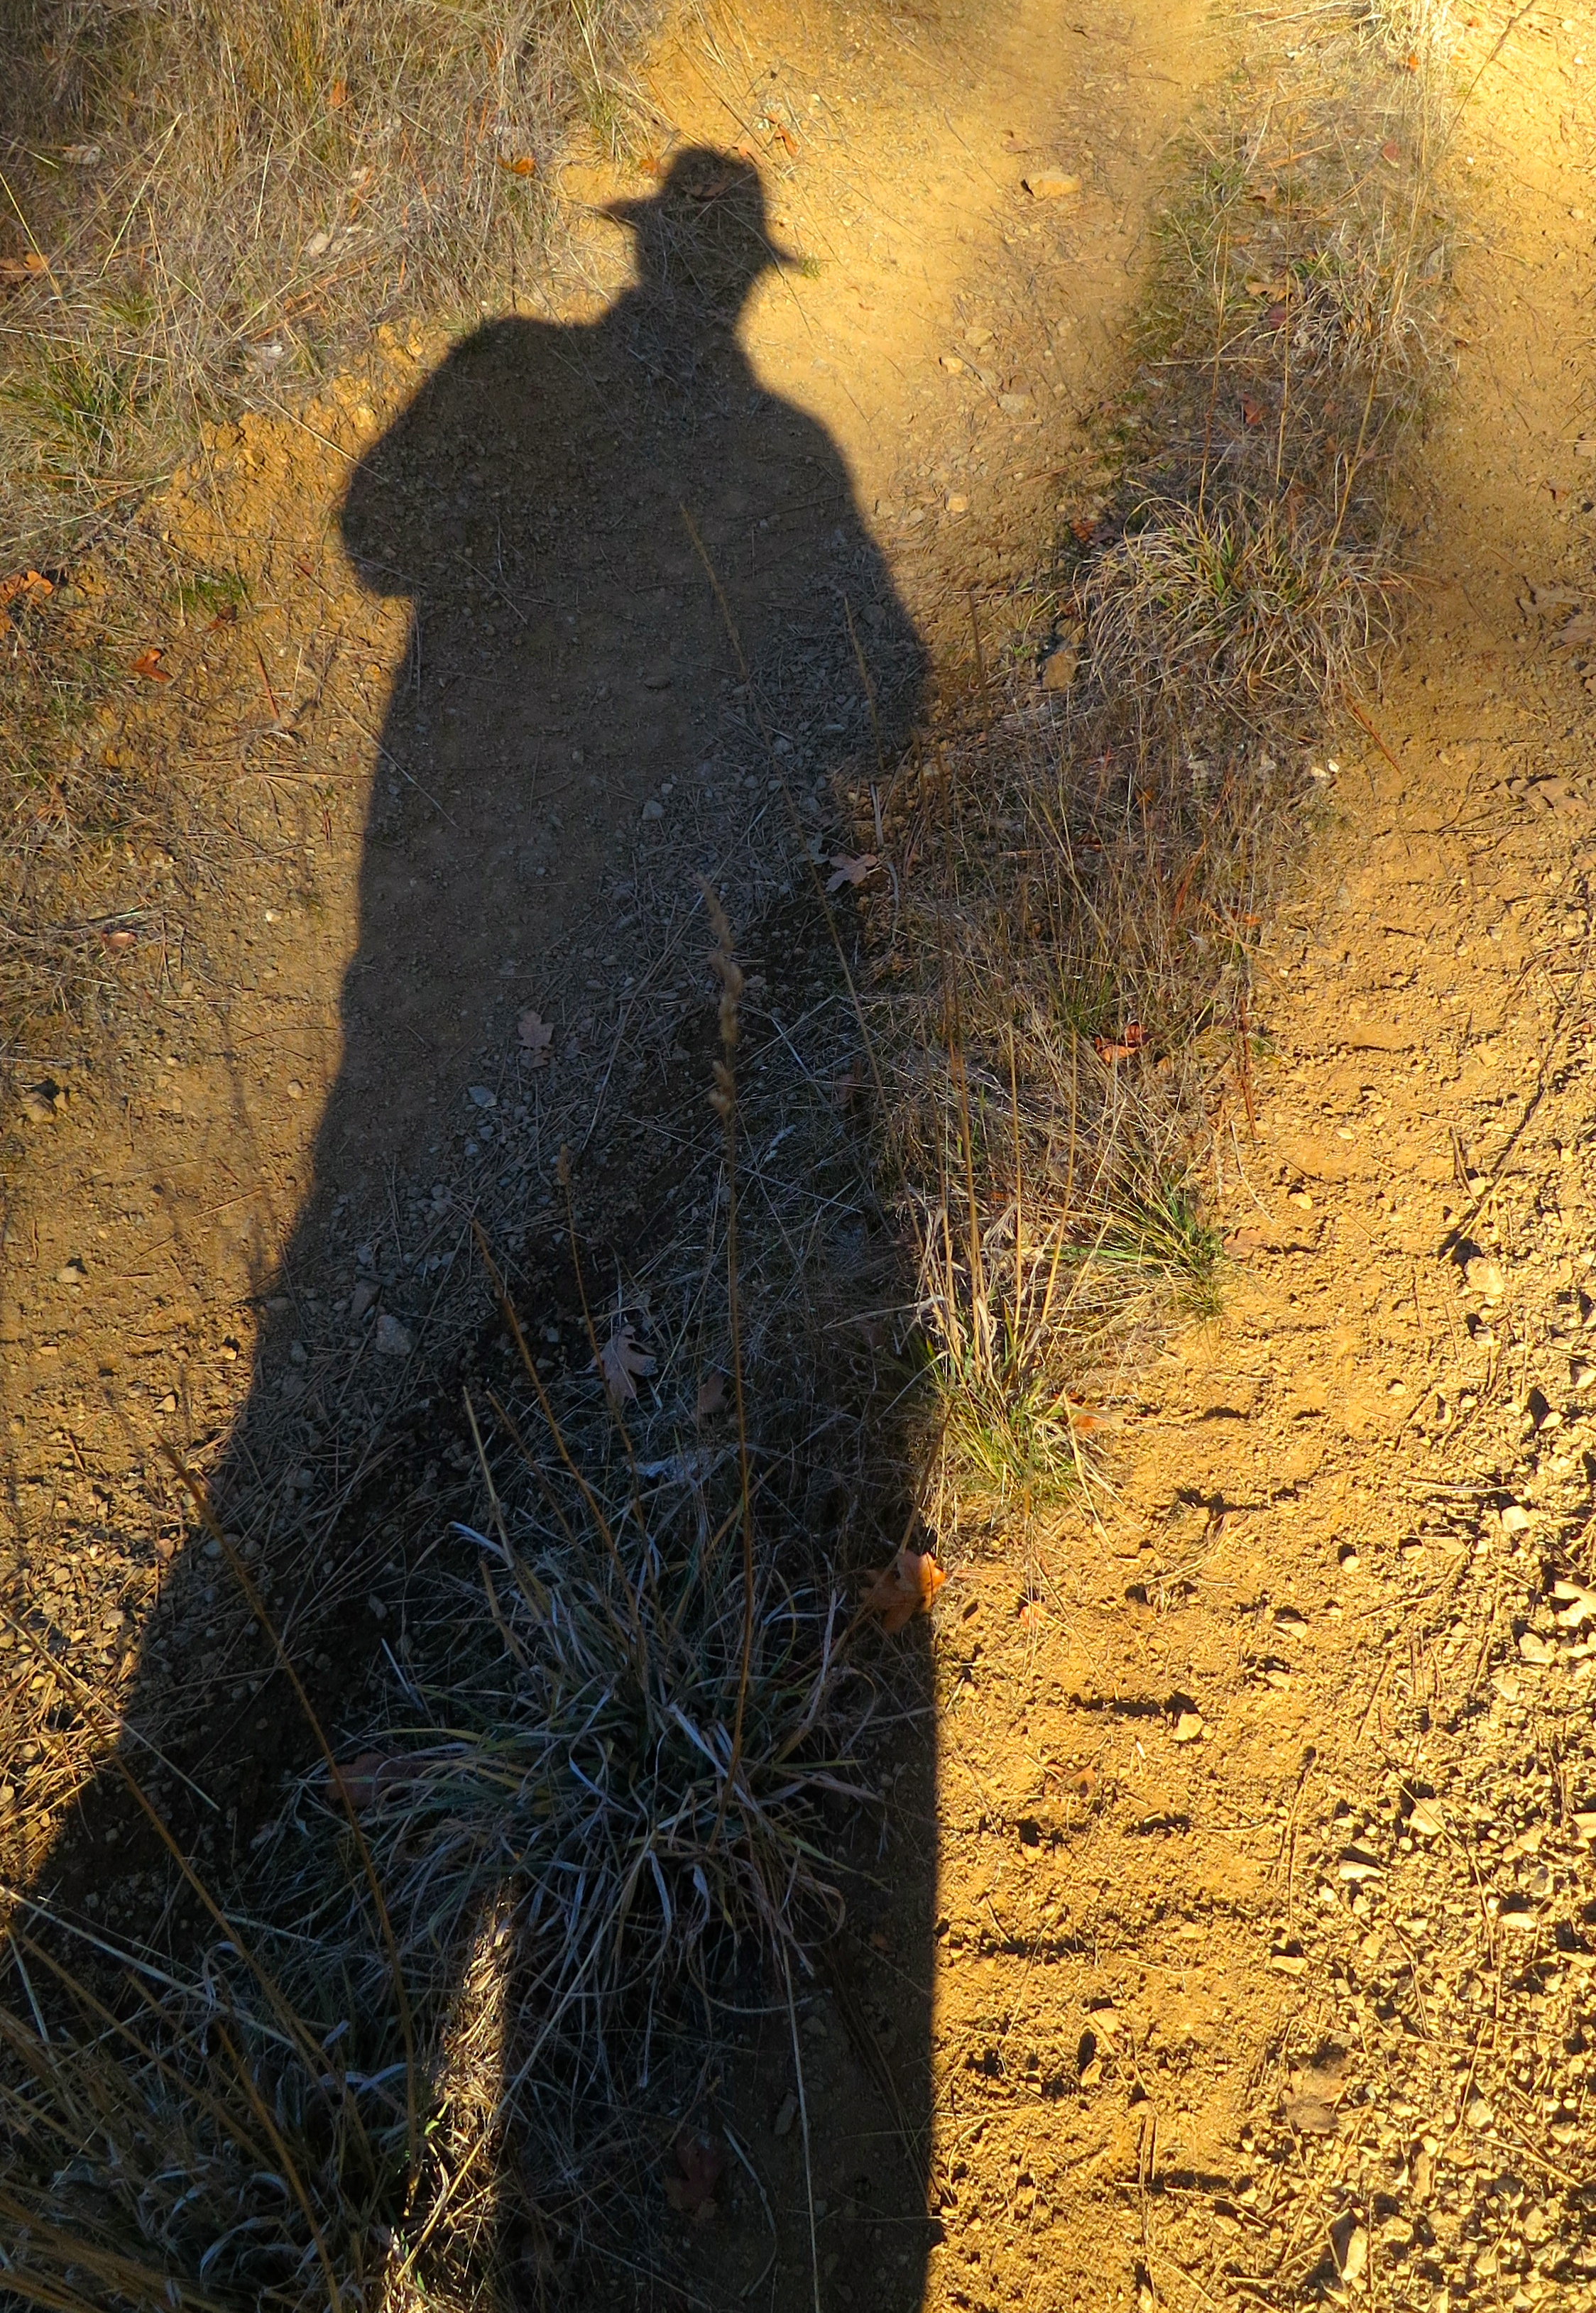 """Just """"me and my shadow strolling down the avenue."""""""